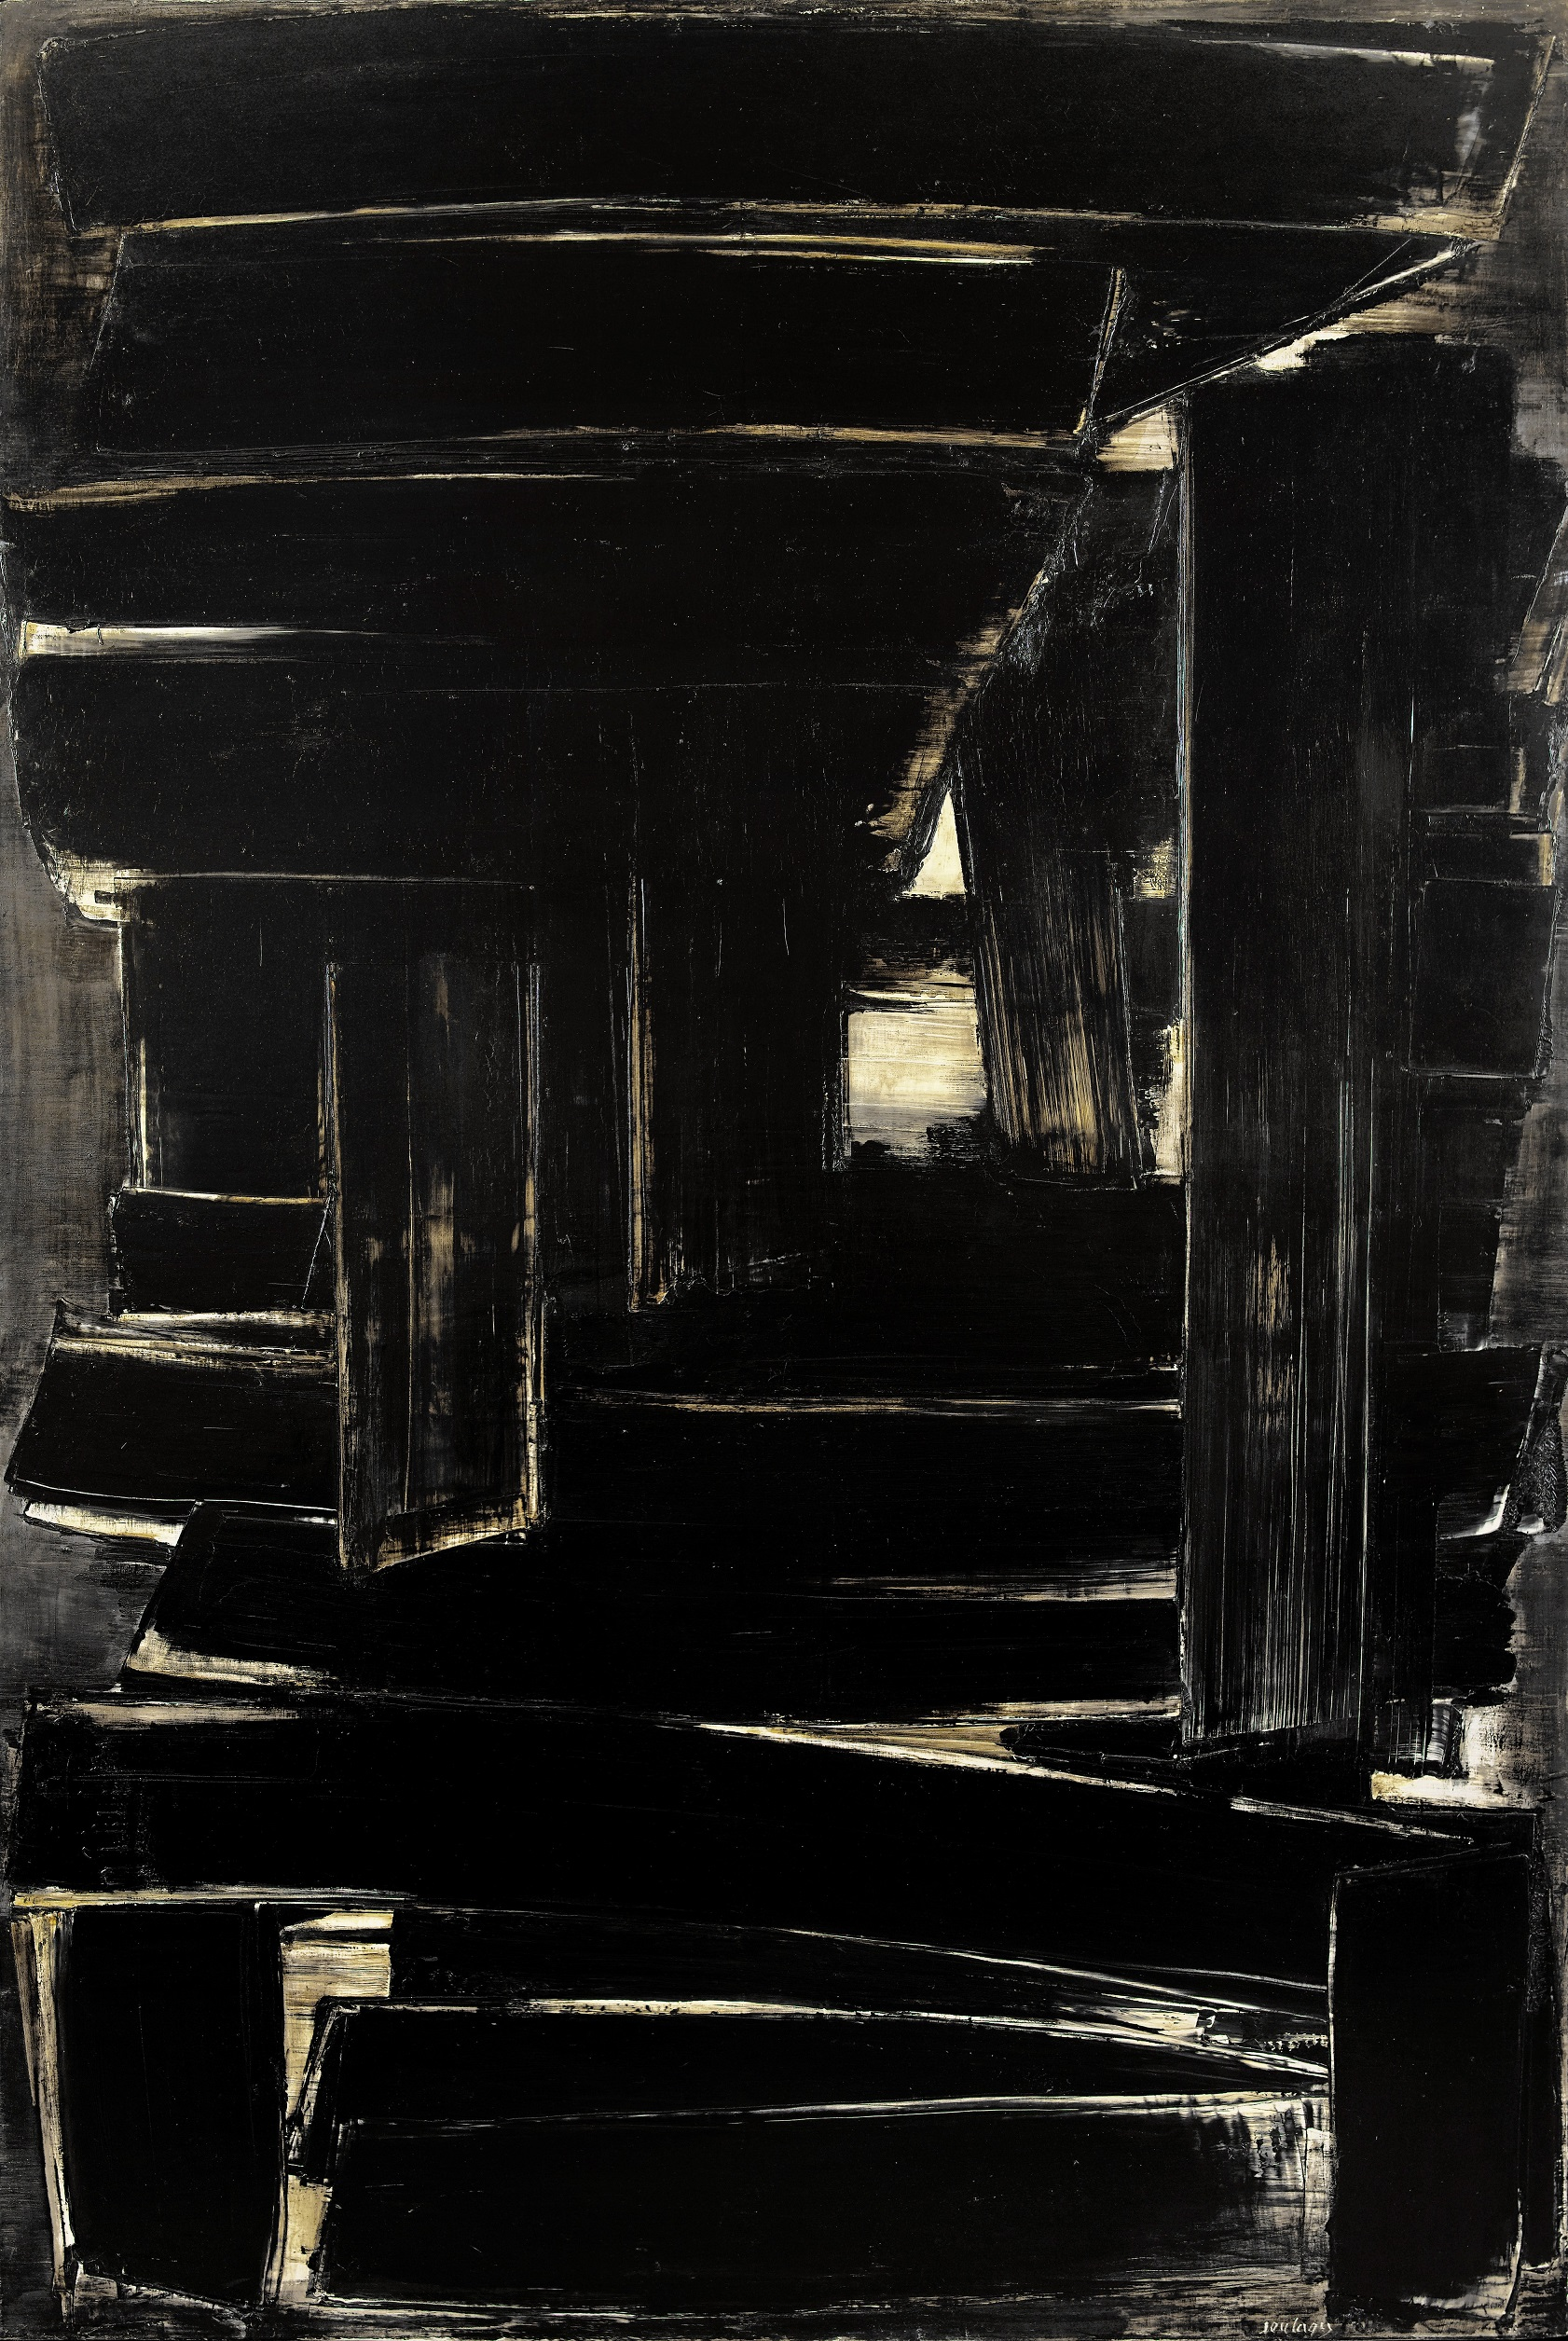 Pierre SOULAGES (1919 ) Peinture 195 x 130 cm, 1er septembre 1957, 1957 Oil on canvas 195 x 130 cm